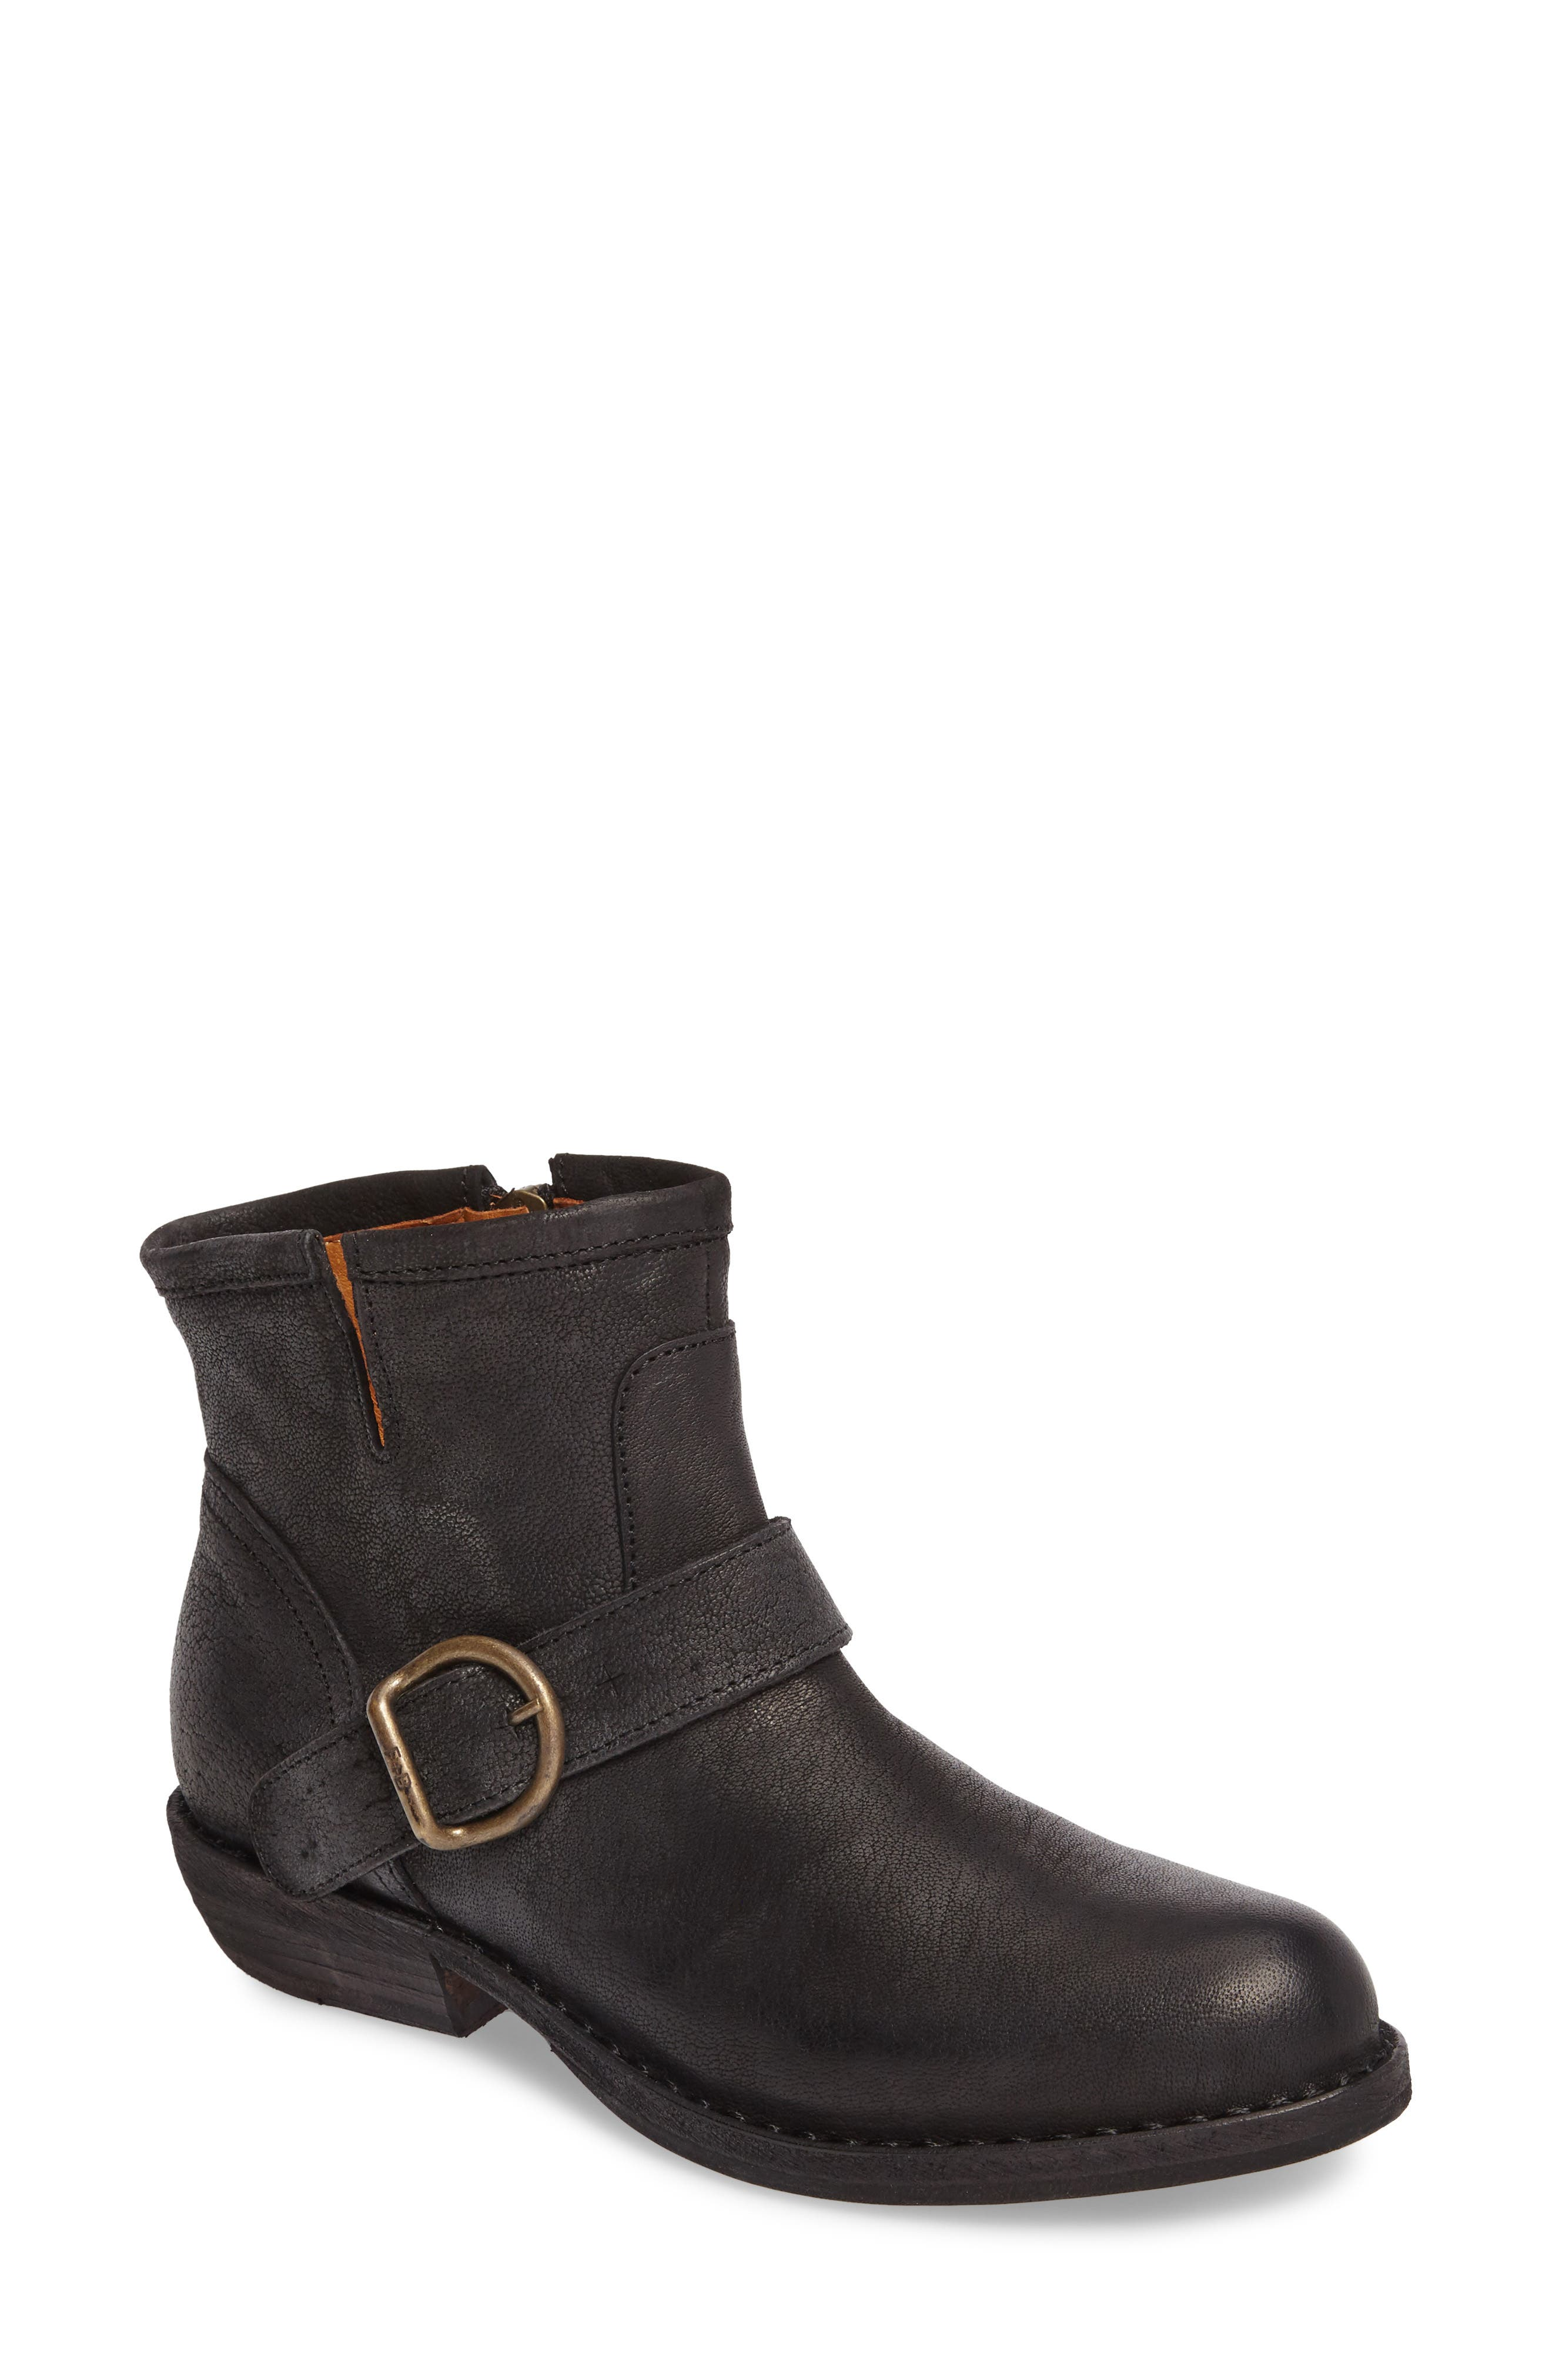 Alternate Image 1 Selected - Fiorentini + Baker 'Chad' Textured Leather Bootie (Women)